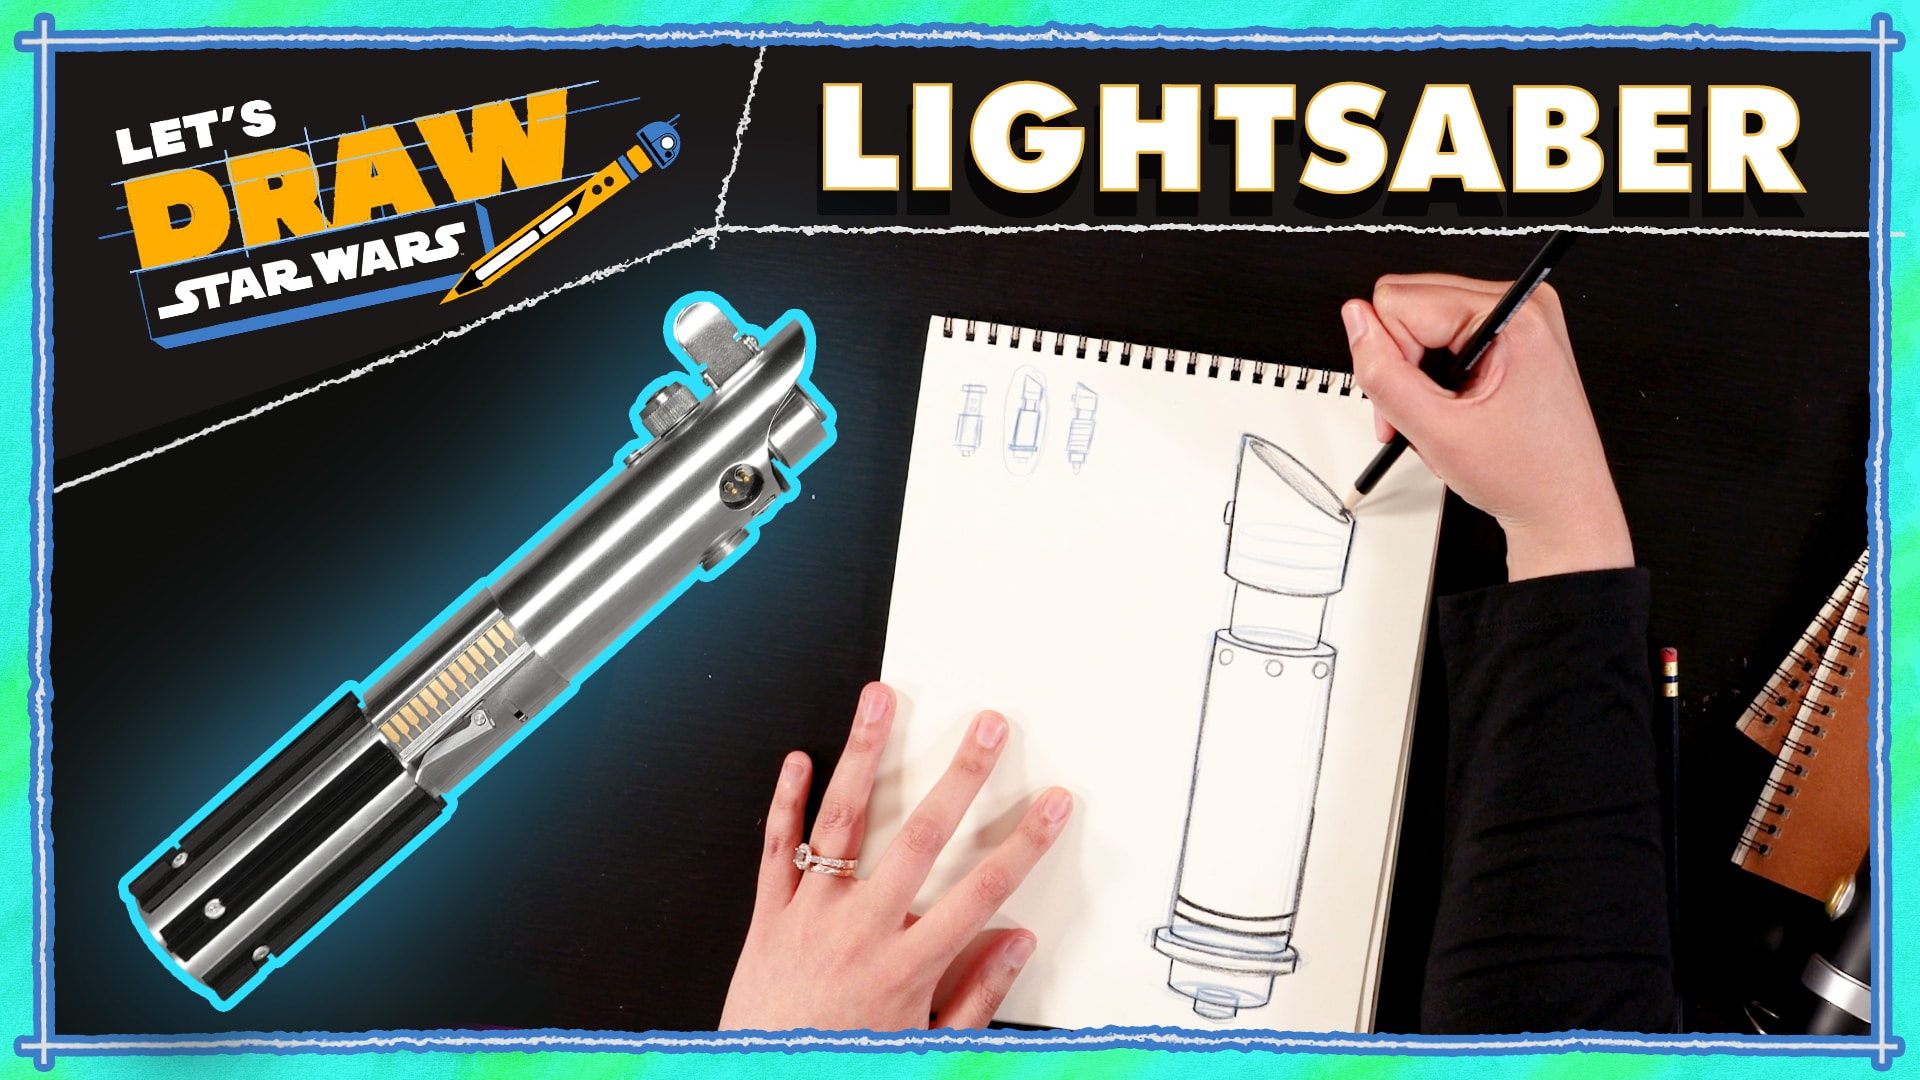 Death Star & Lightsaber Tutorial | Let's Draw Star Wars